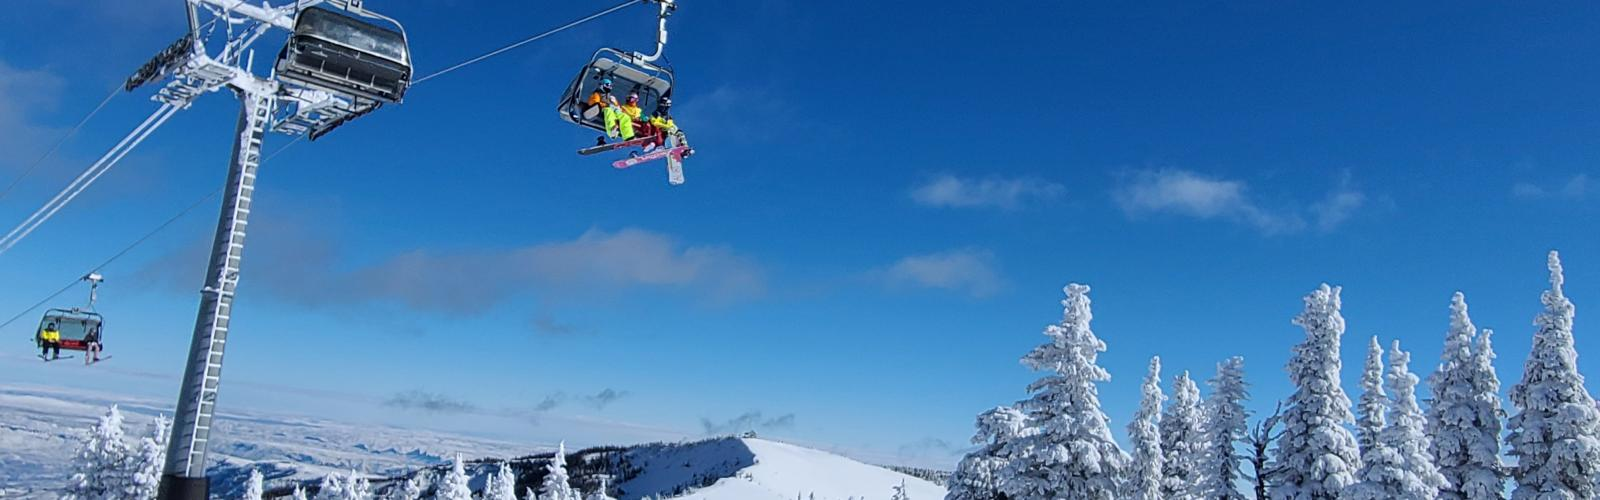 Riders on the Wenatchee Express Chairlift with Microwave and Windy Ridge in the background